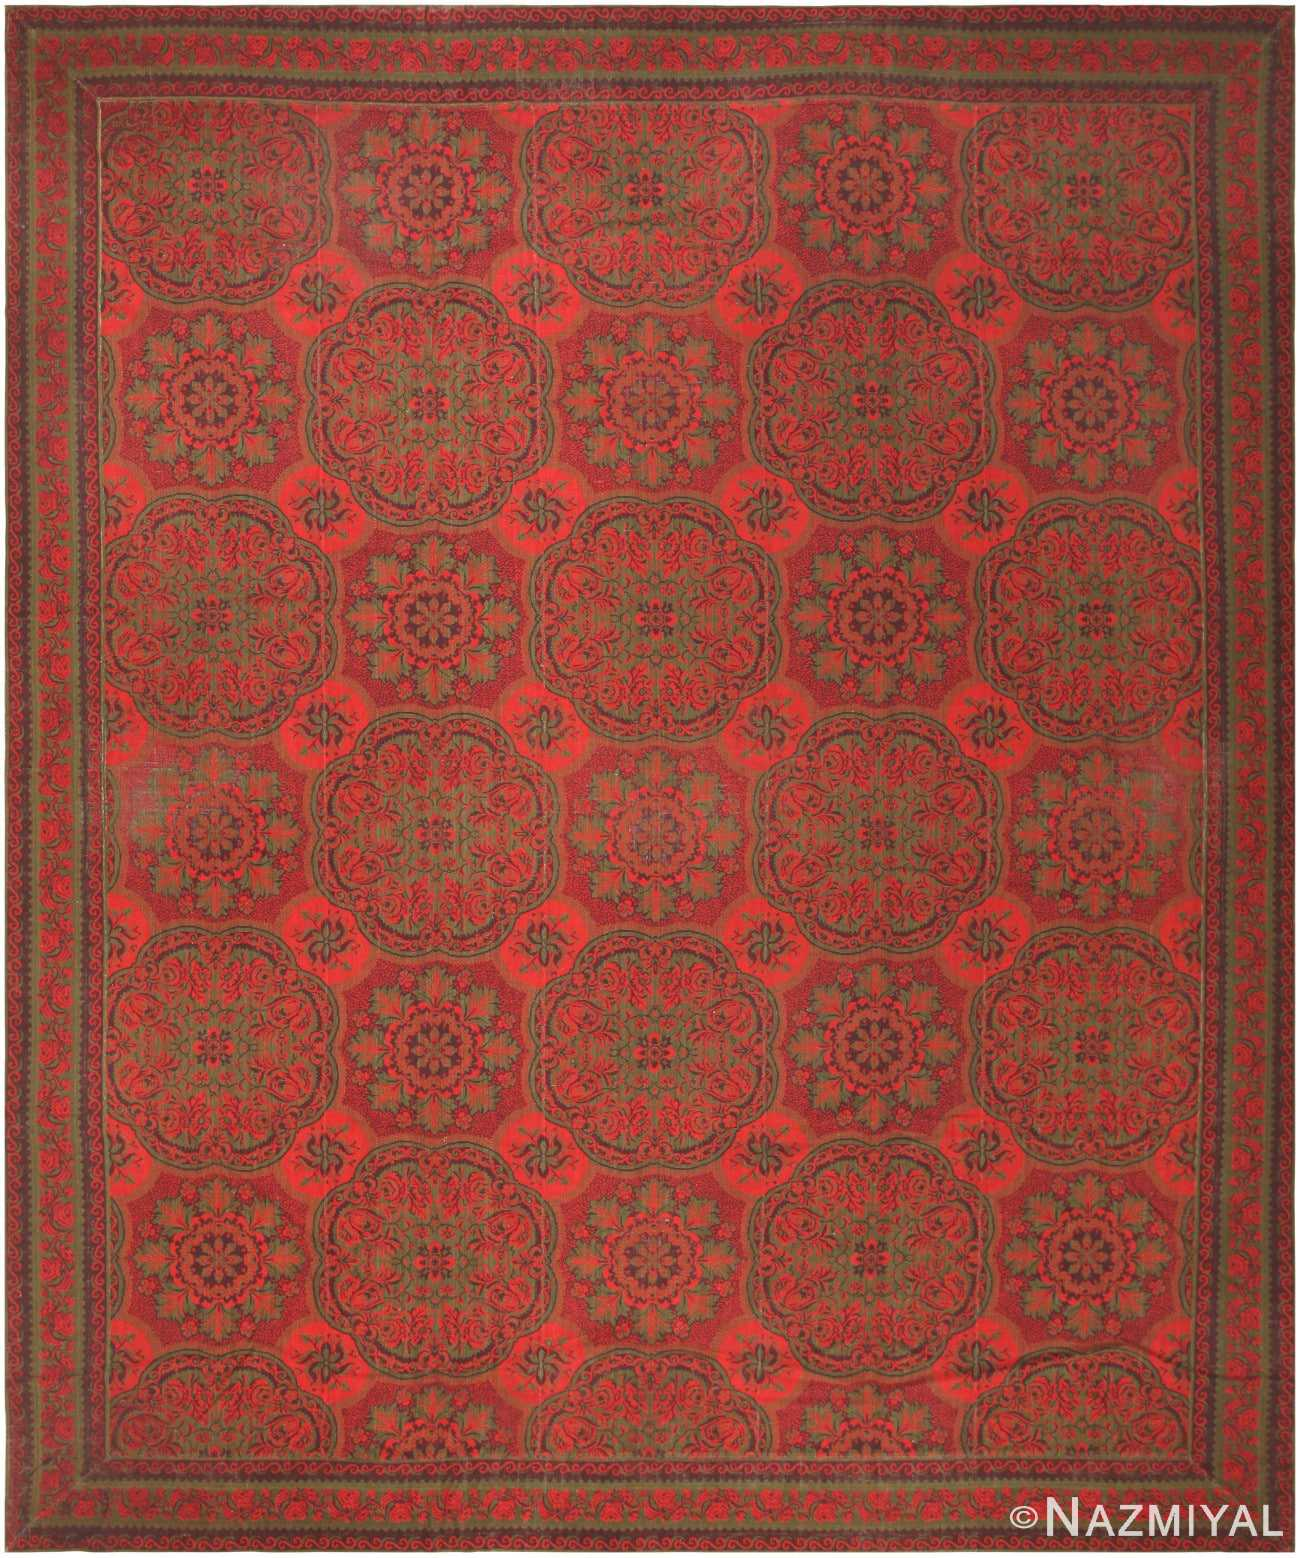 Antique English Arts And Crafts Rug 42375 By Nazmiyal